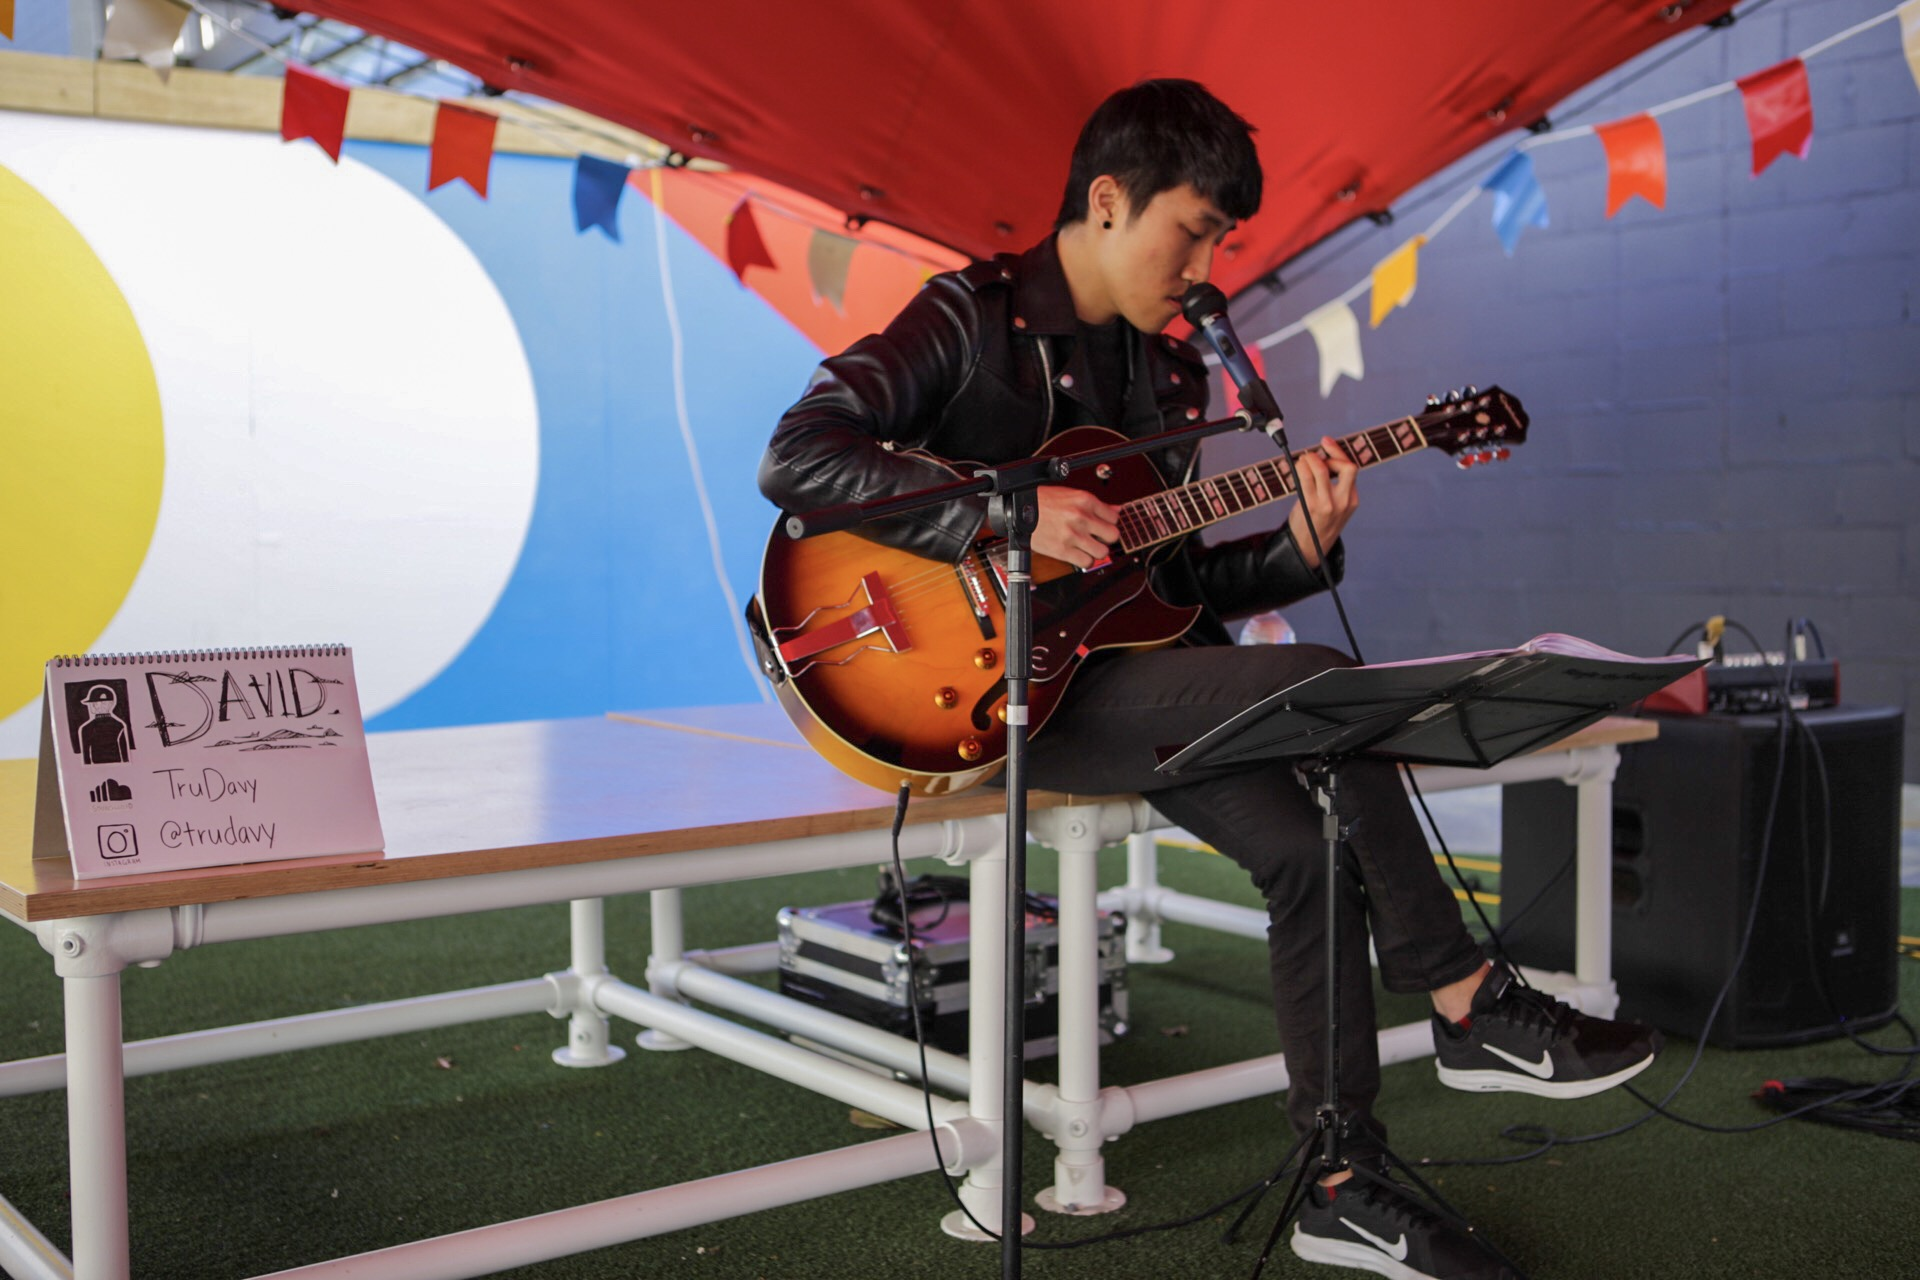 David Choi performing at our Young Buskers Showcase in May to celebrate Youth Week and New Zealand Music Month in May 2019.